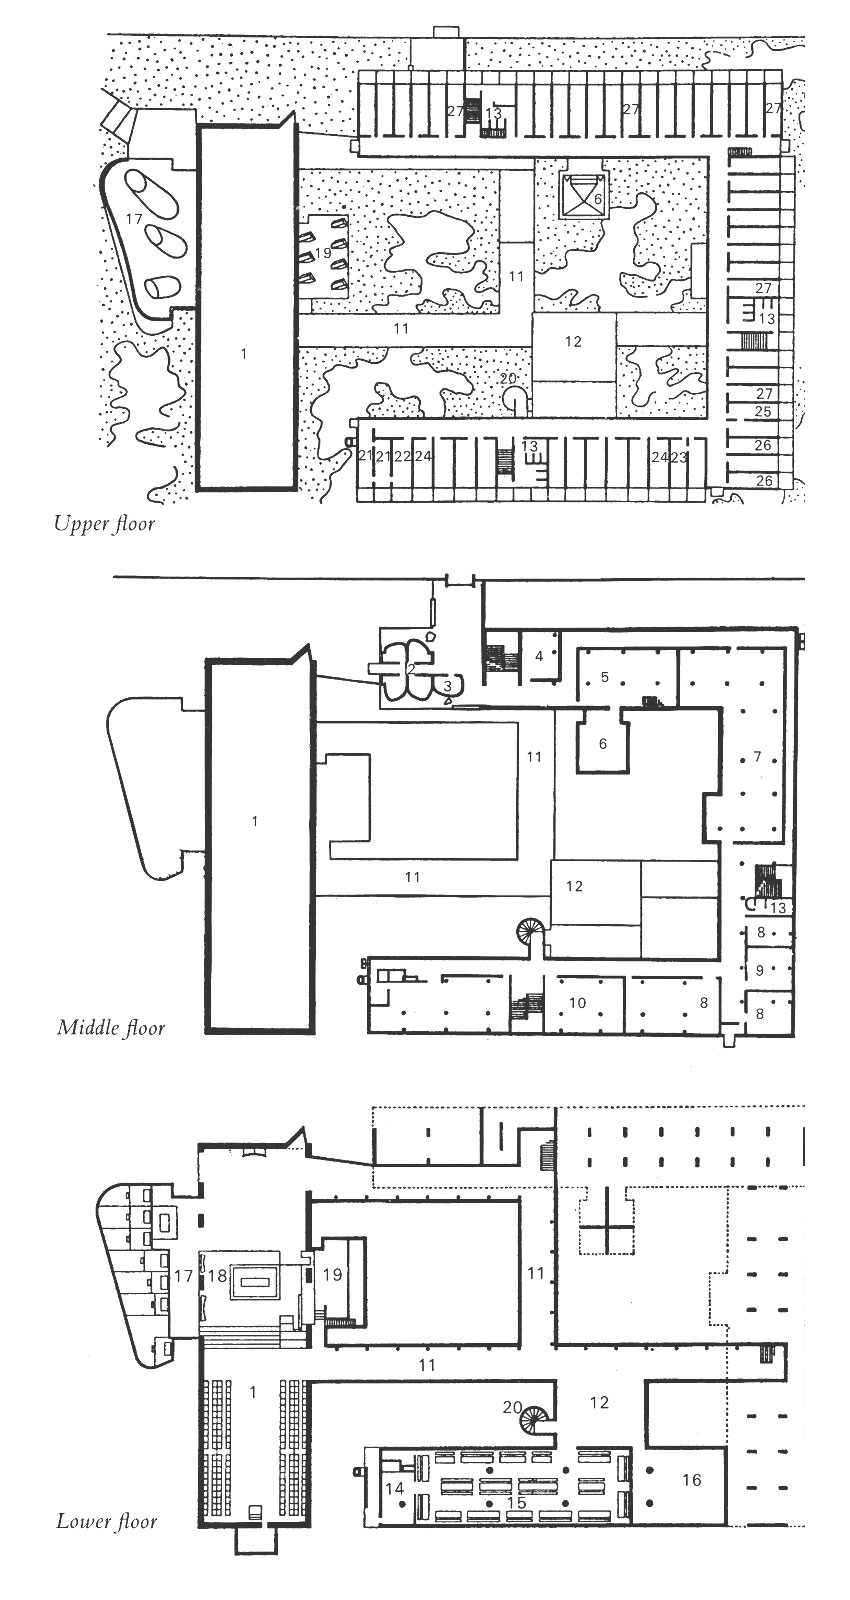 Floor Plans of Le Corbusier St Marie de La Tourette